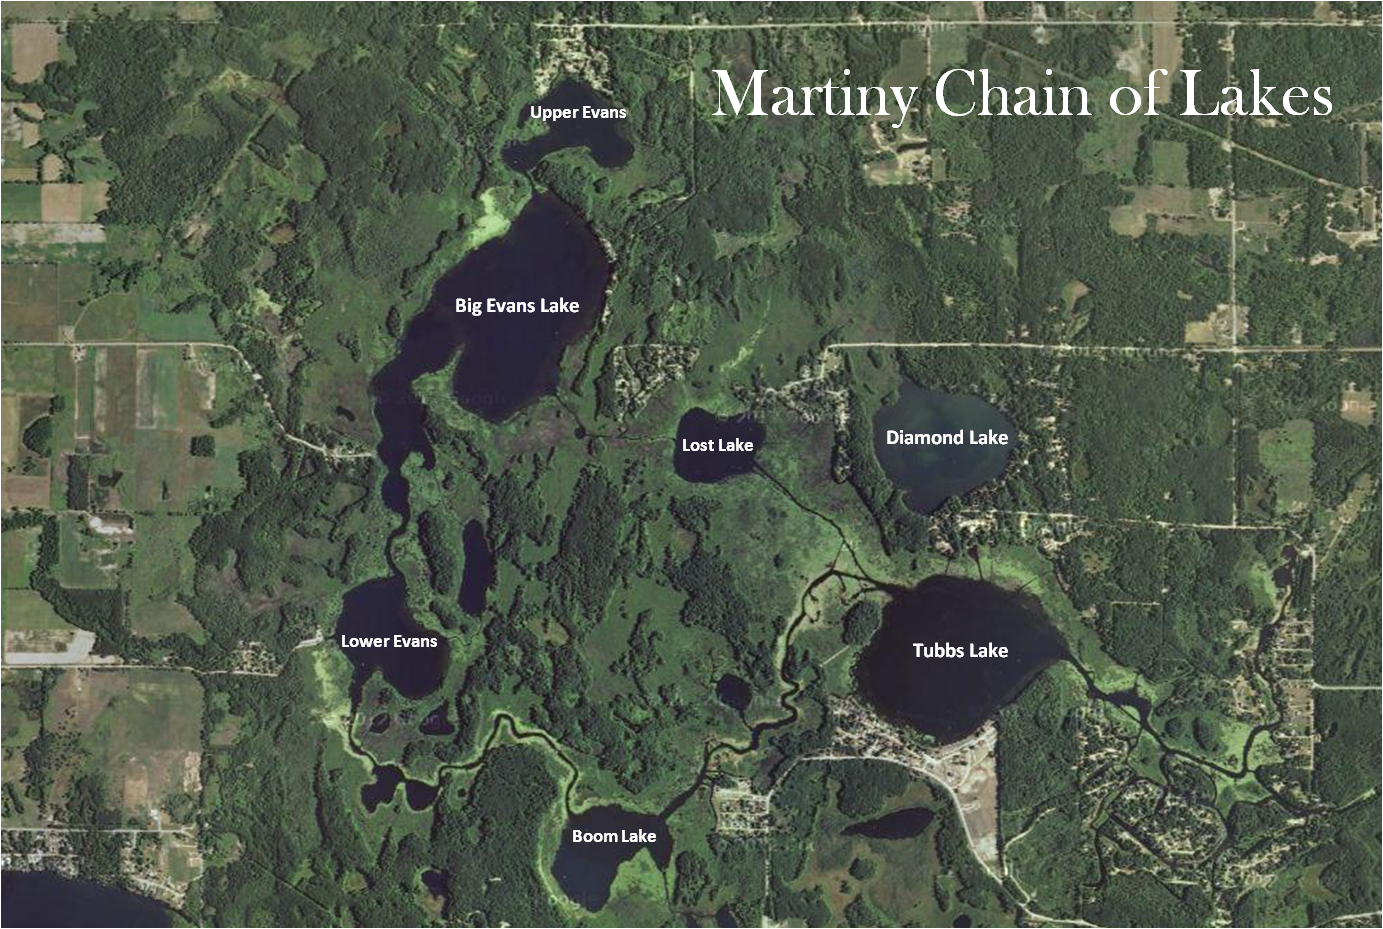 Remus Michigan Map.Martiny Chain Of Lakes Mi Real Estate Coldwell Banker Lakes Realty